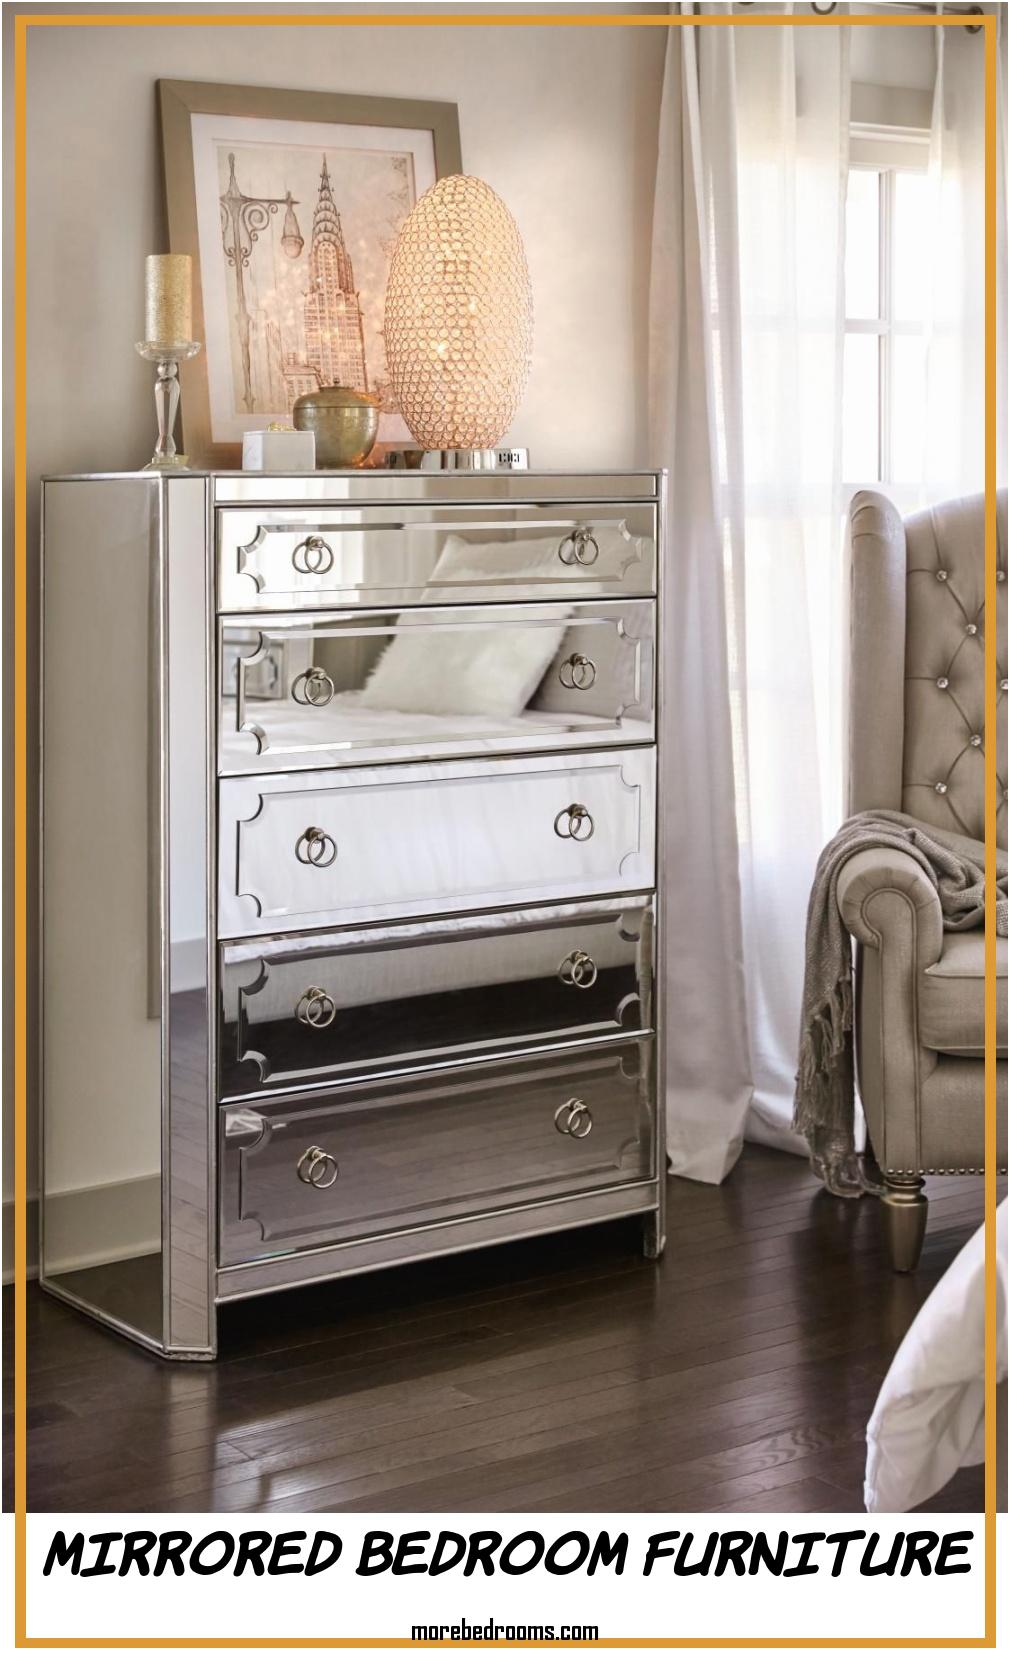 Mirrored Bedroom Furniture Frggoo Lovely Harlow Chest In 202010101515zvys